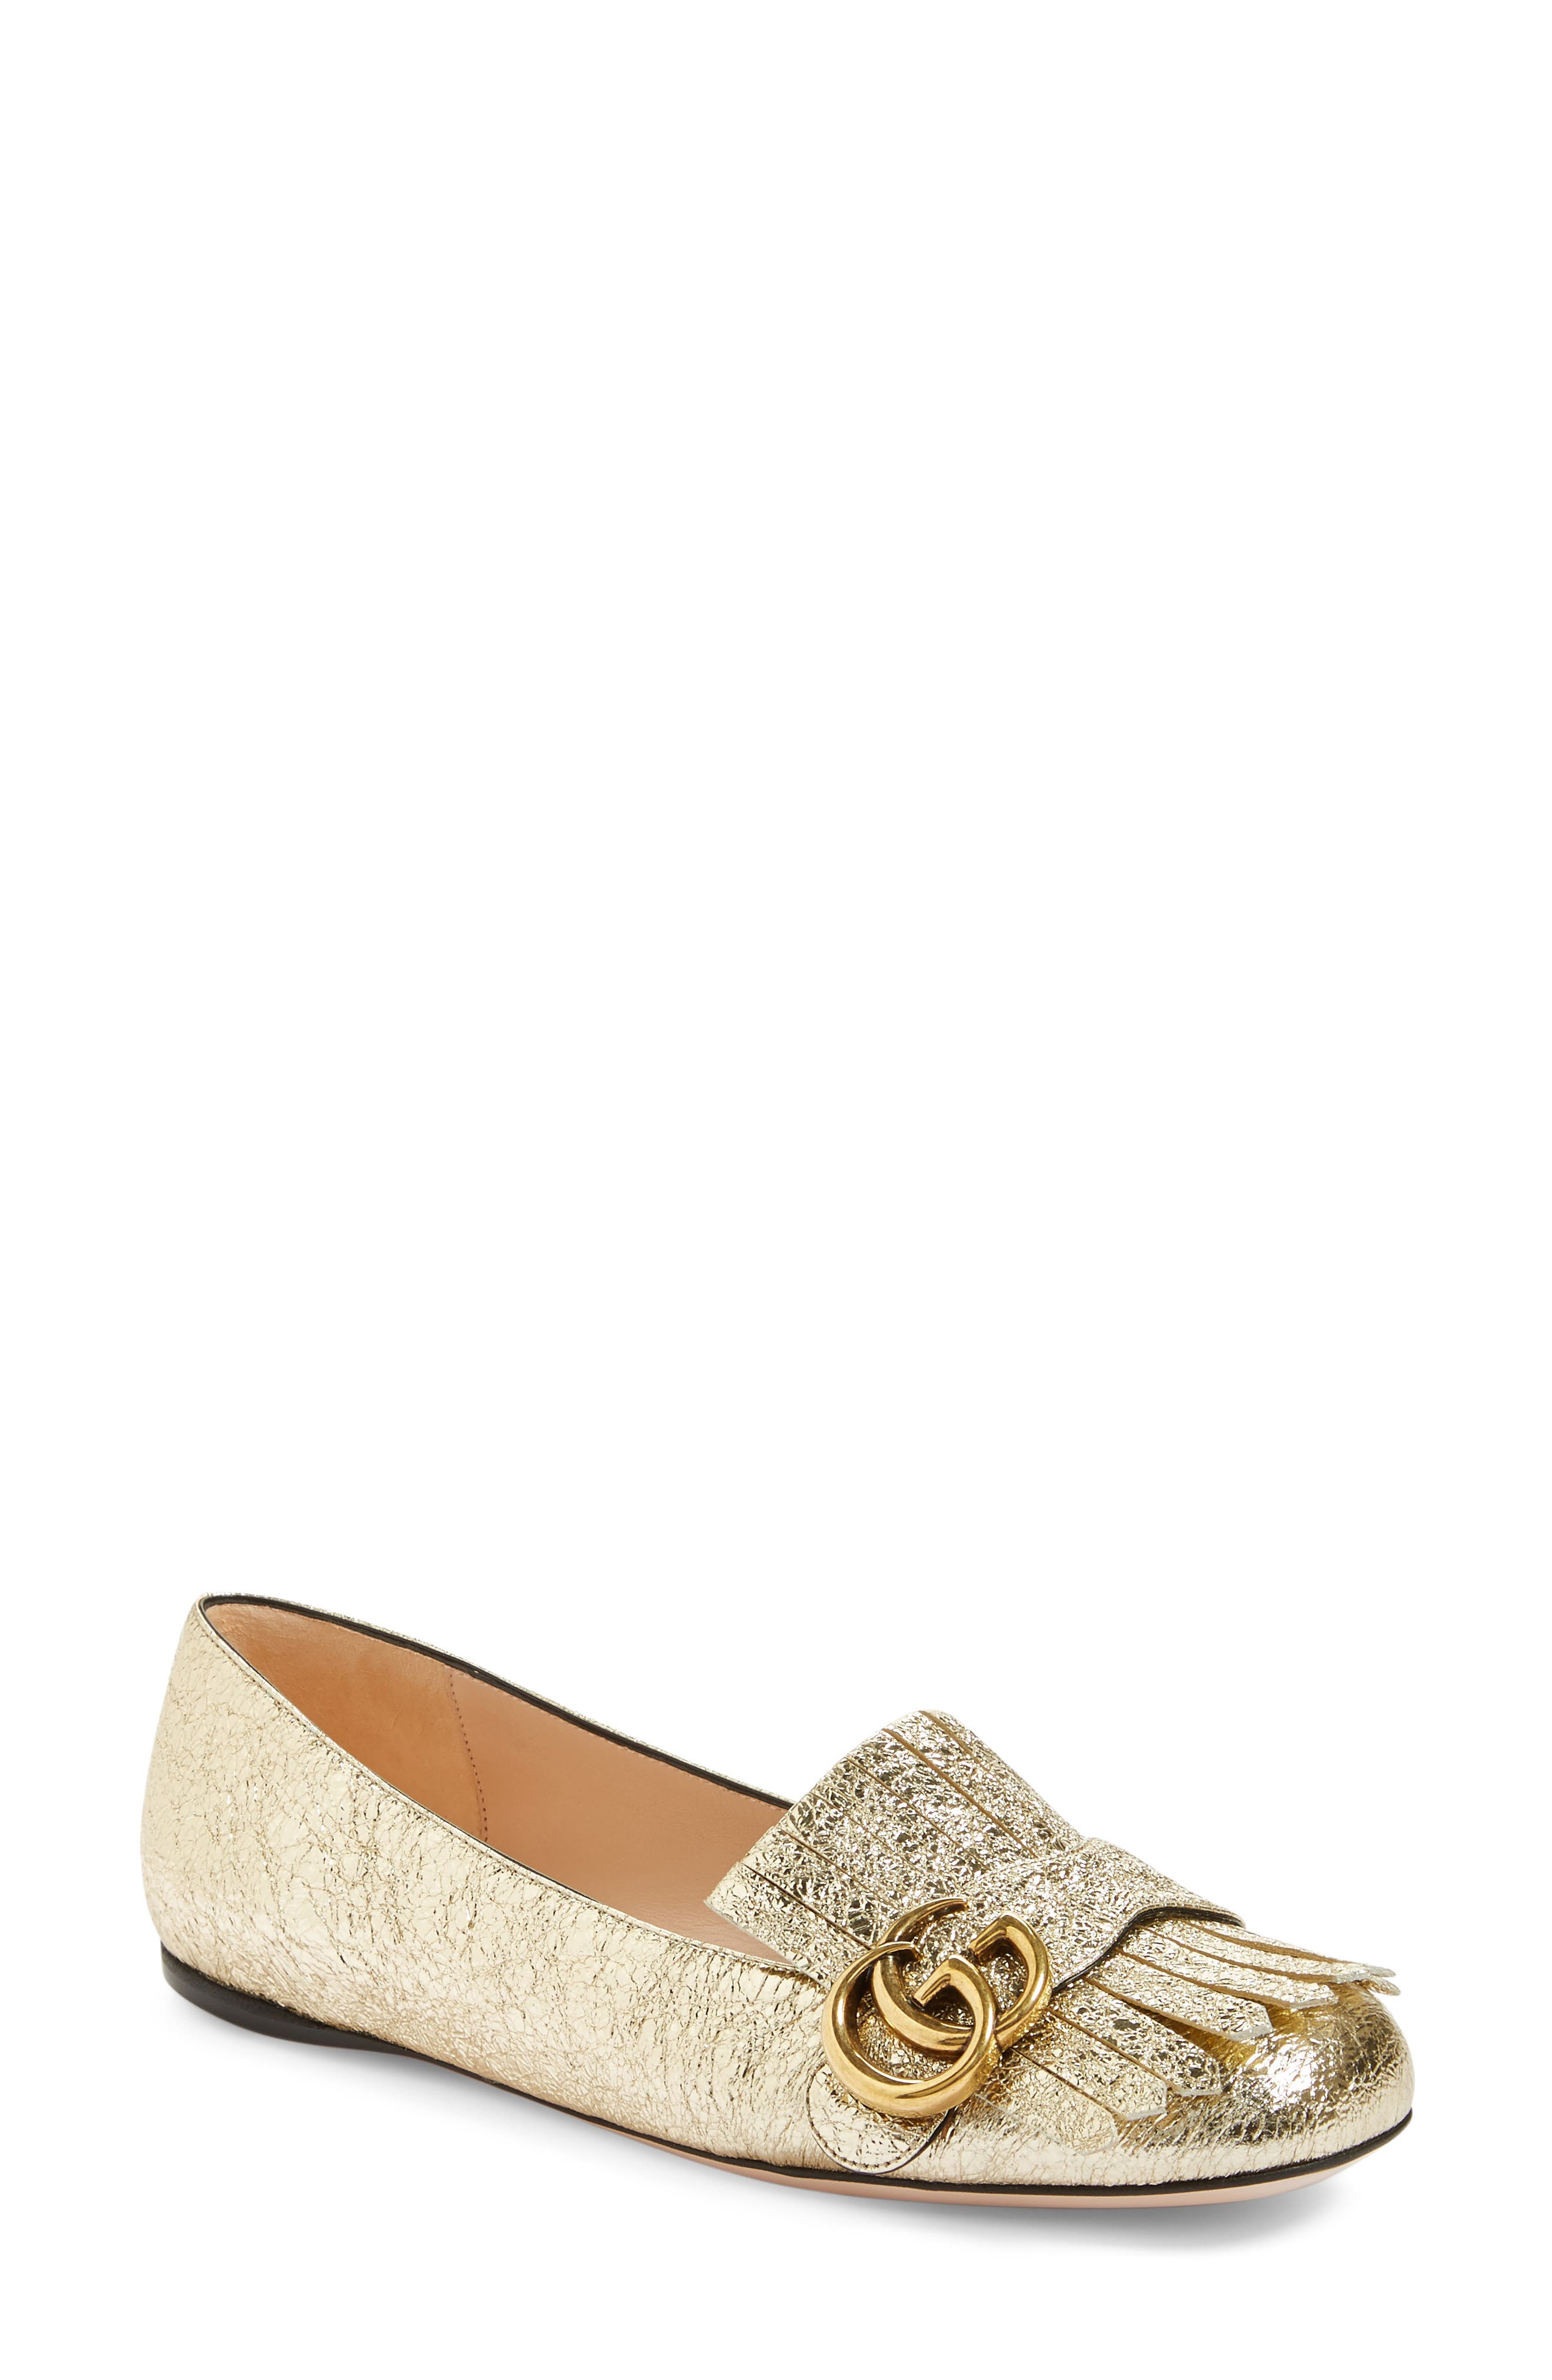 Alternate Image 1 Selected - Gucci GG Marmont Flat (Women)